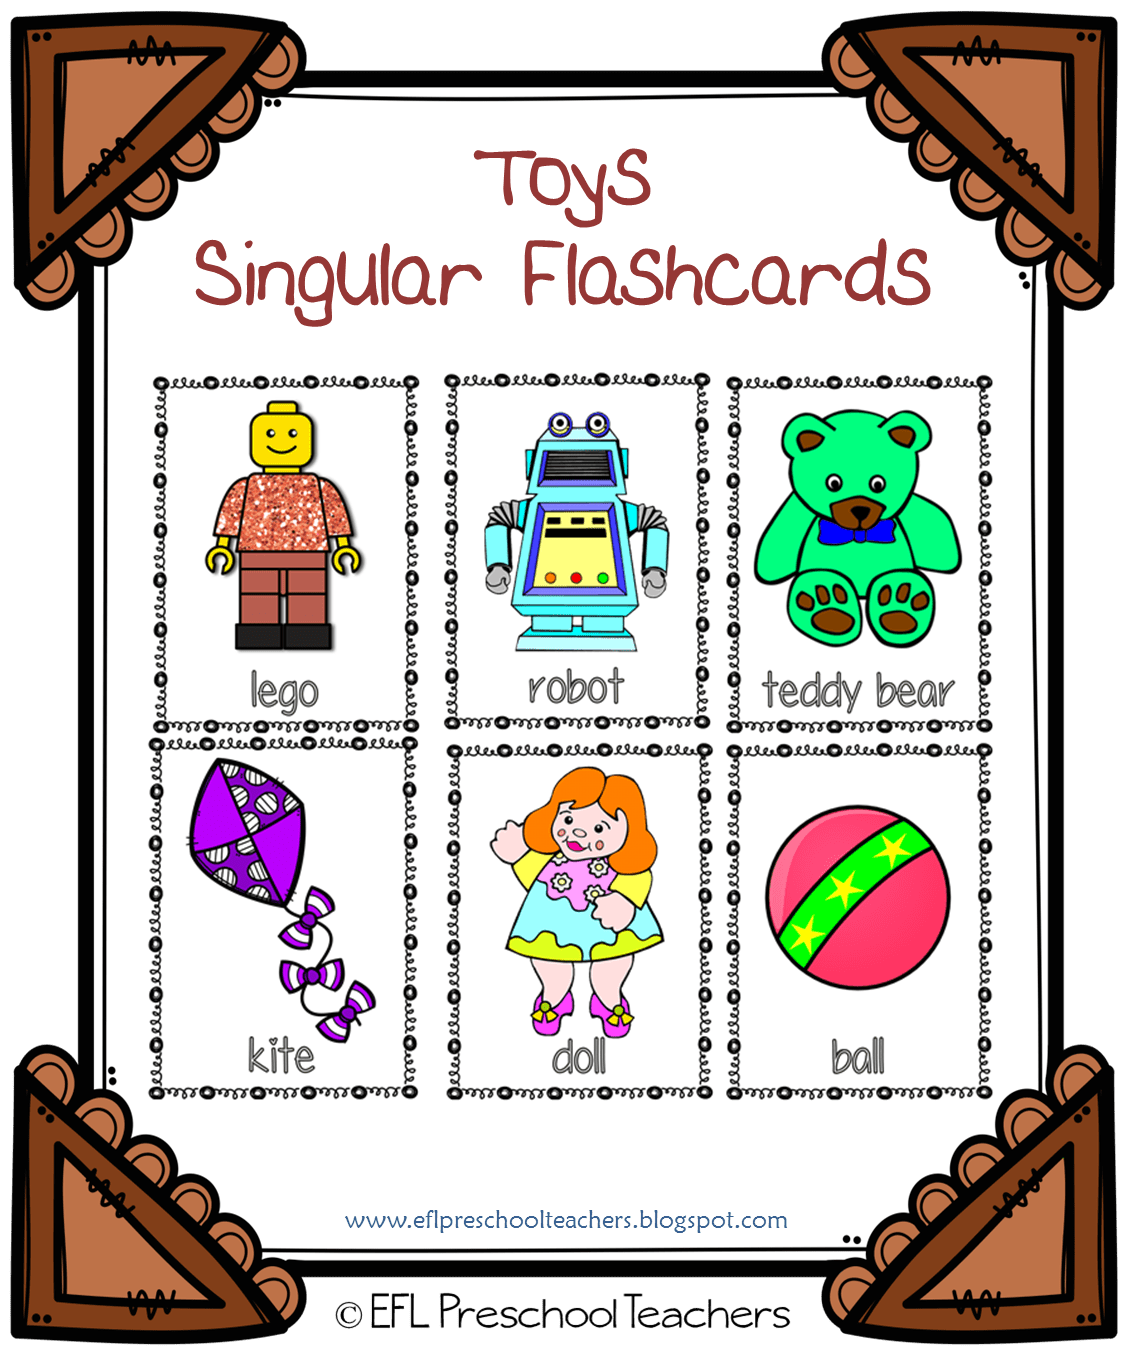 Esl Efl Preschool Teachers Toys Worksheets